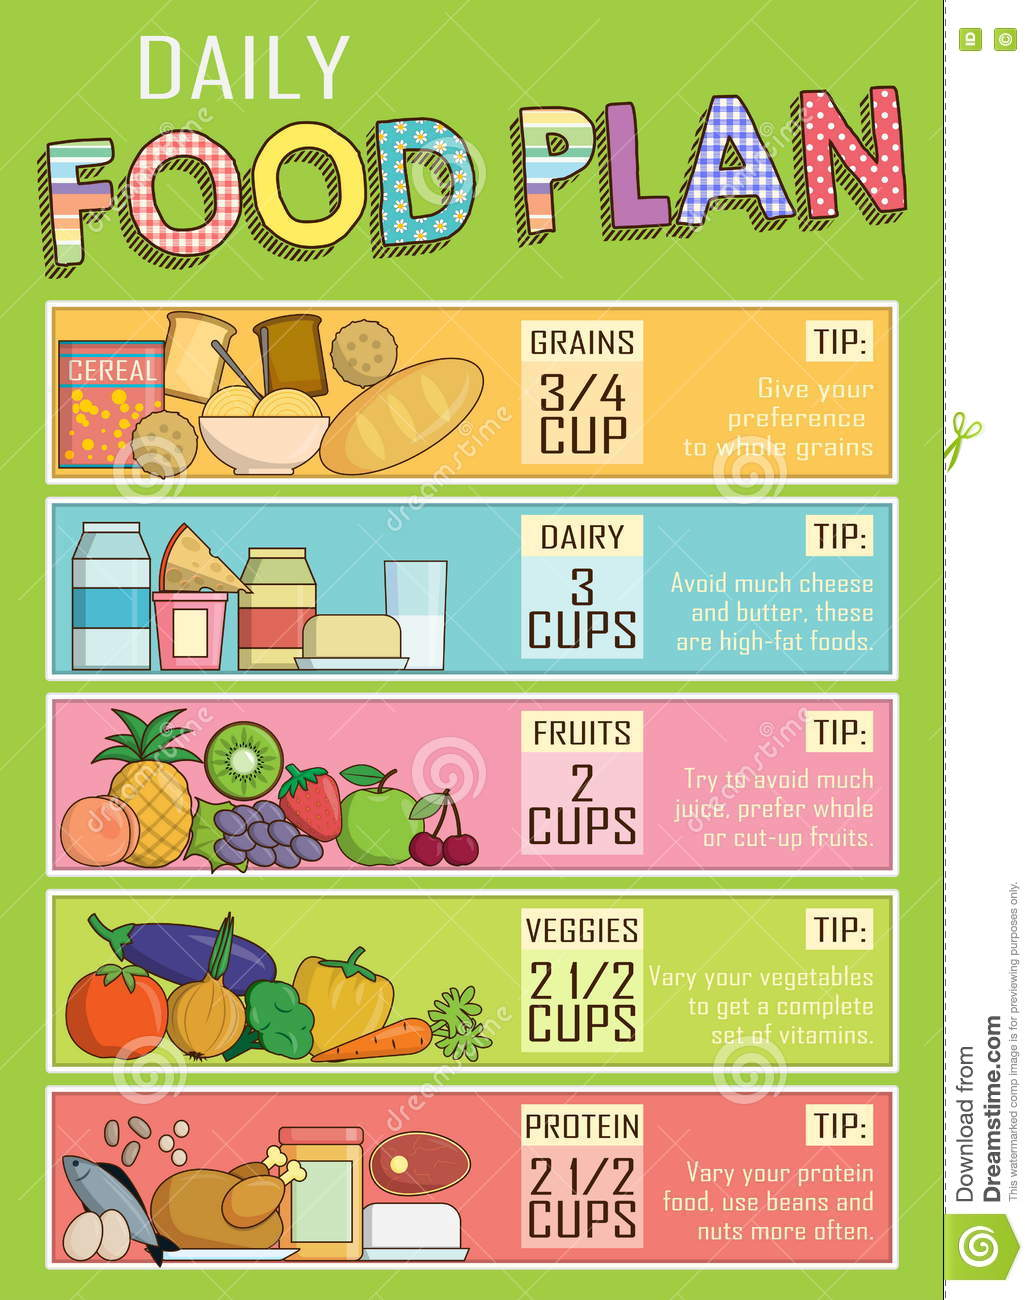 Healthy Daily Nutrition Food Plan Stock Vector - Image: 77596403